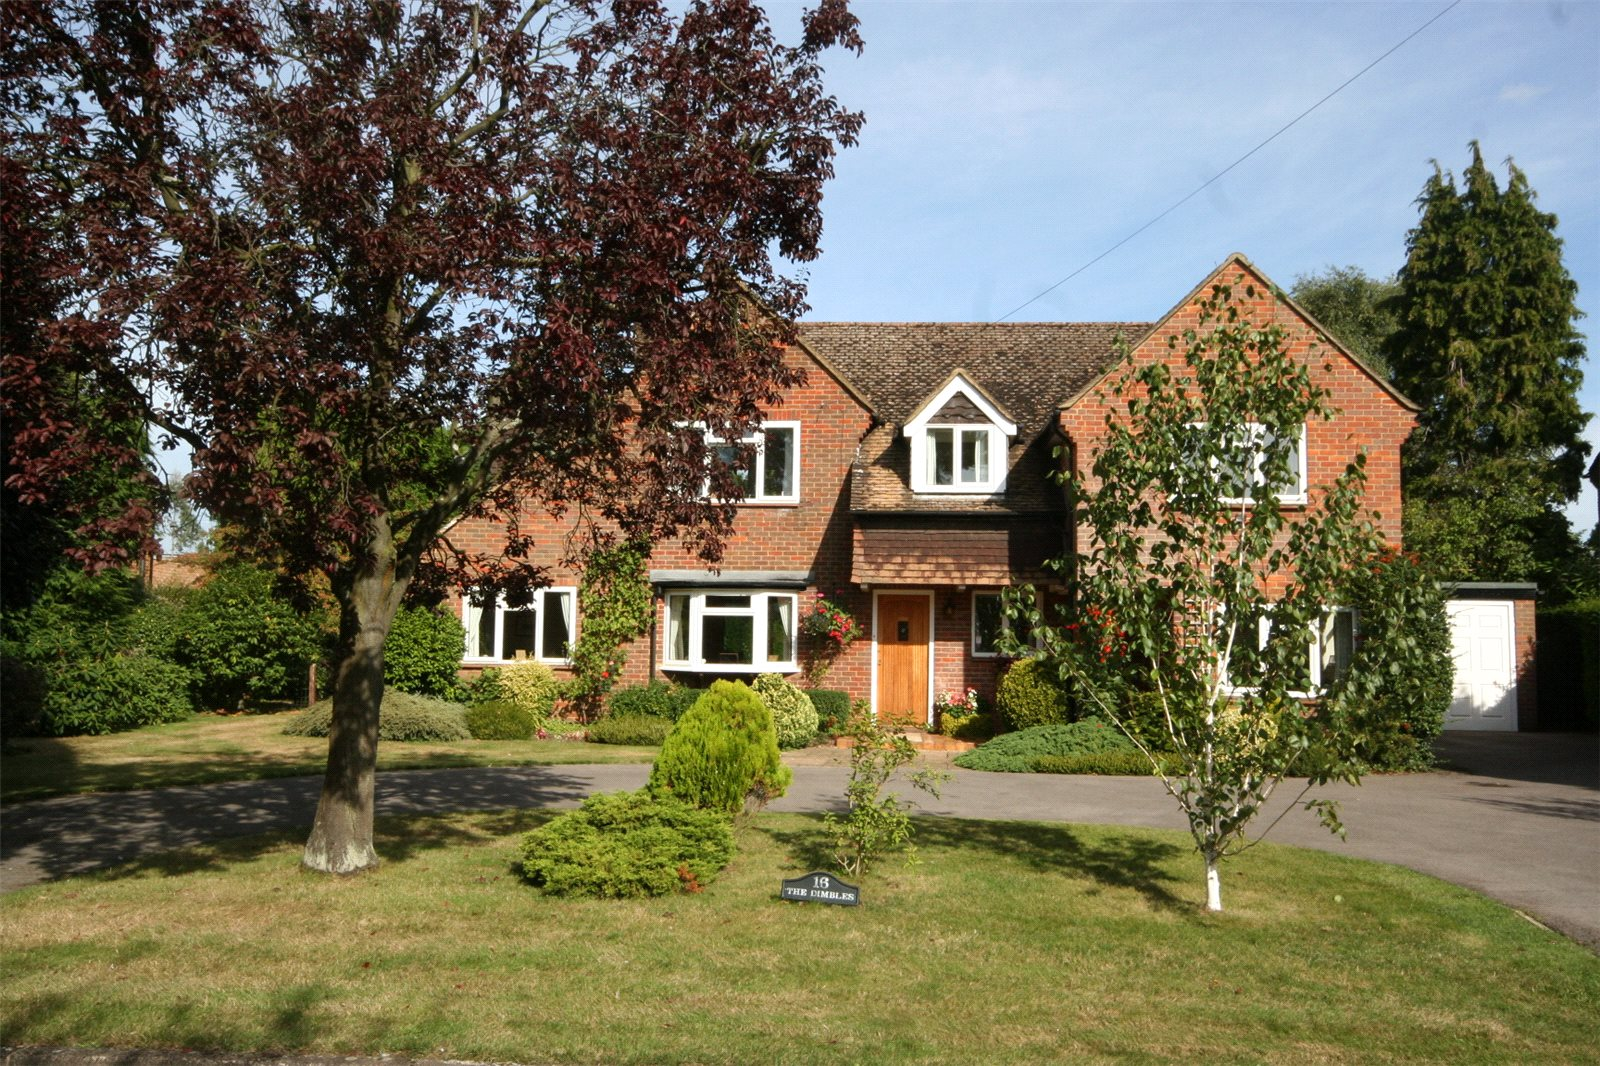 Single Family Home for Sale at Clevehurst Close, Stoke Poges, Bucks, SL2 England